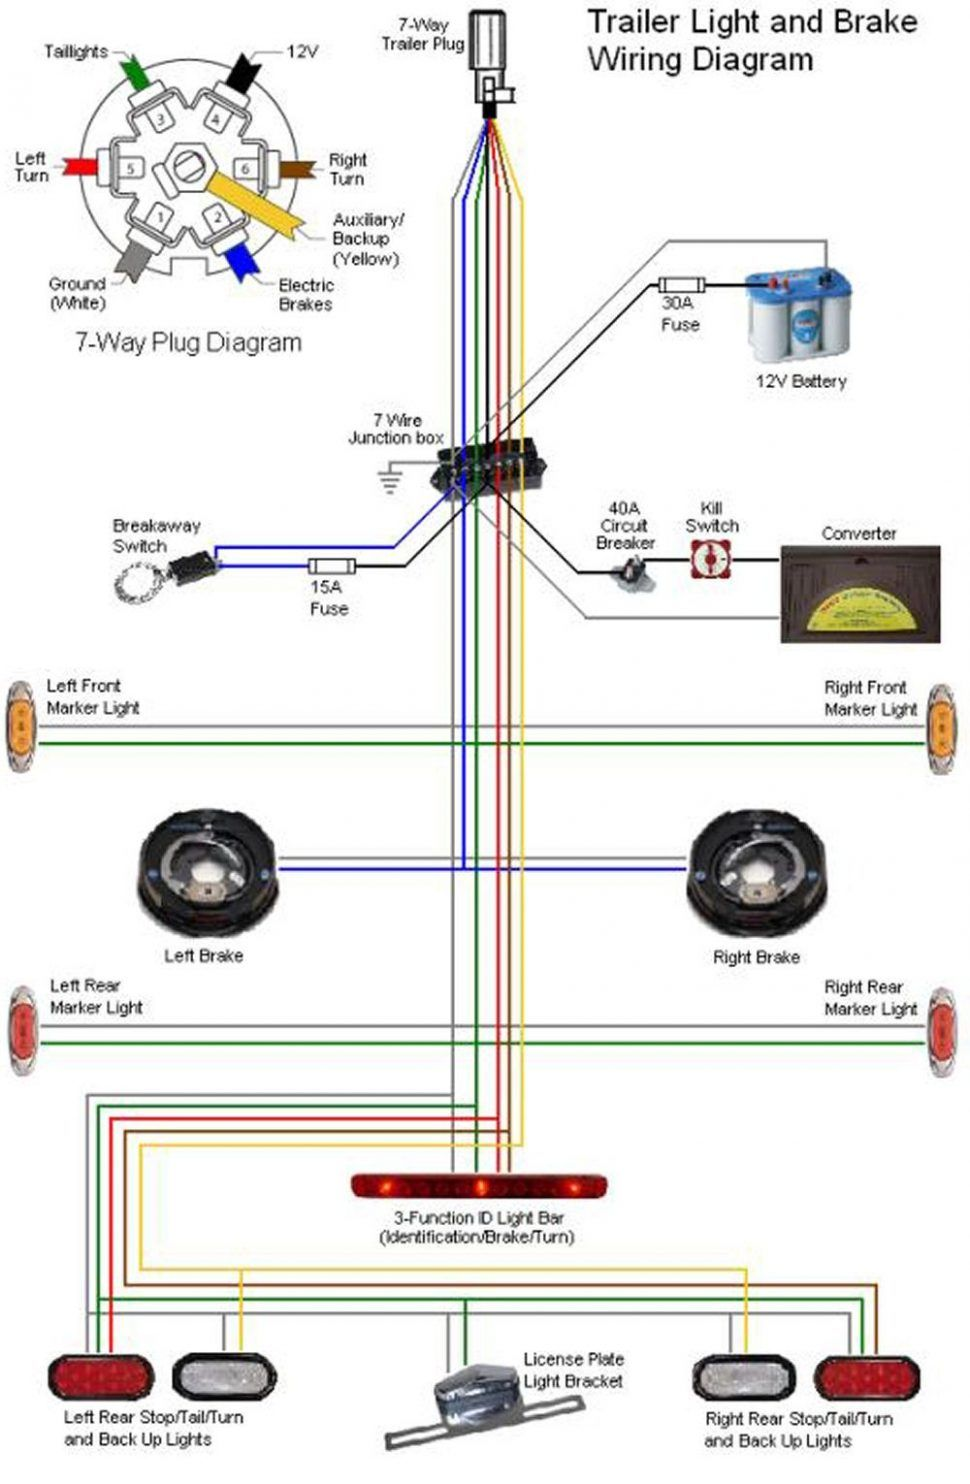 Shasta Trailer Lights Wiring Diagram | Wiring Liry on